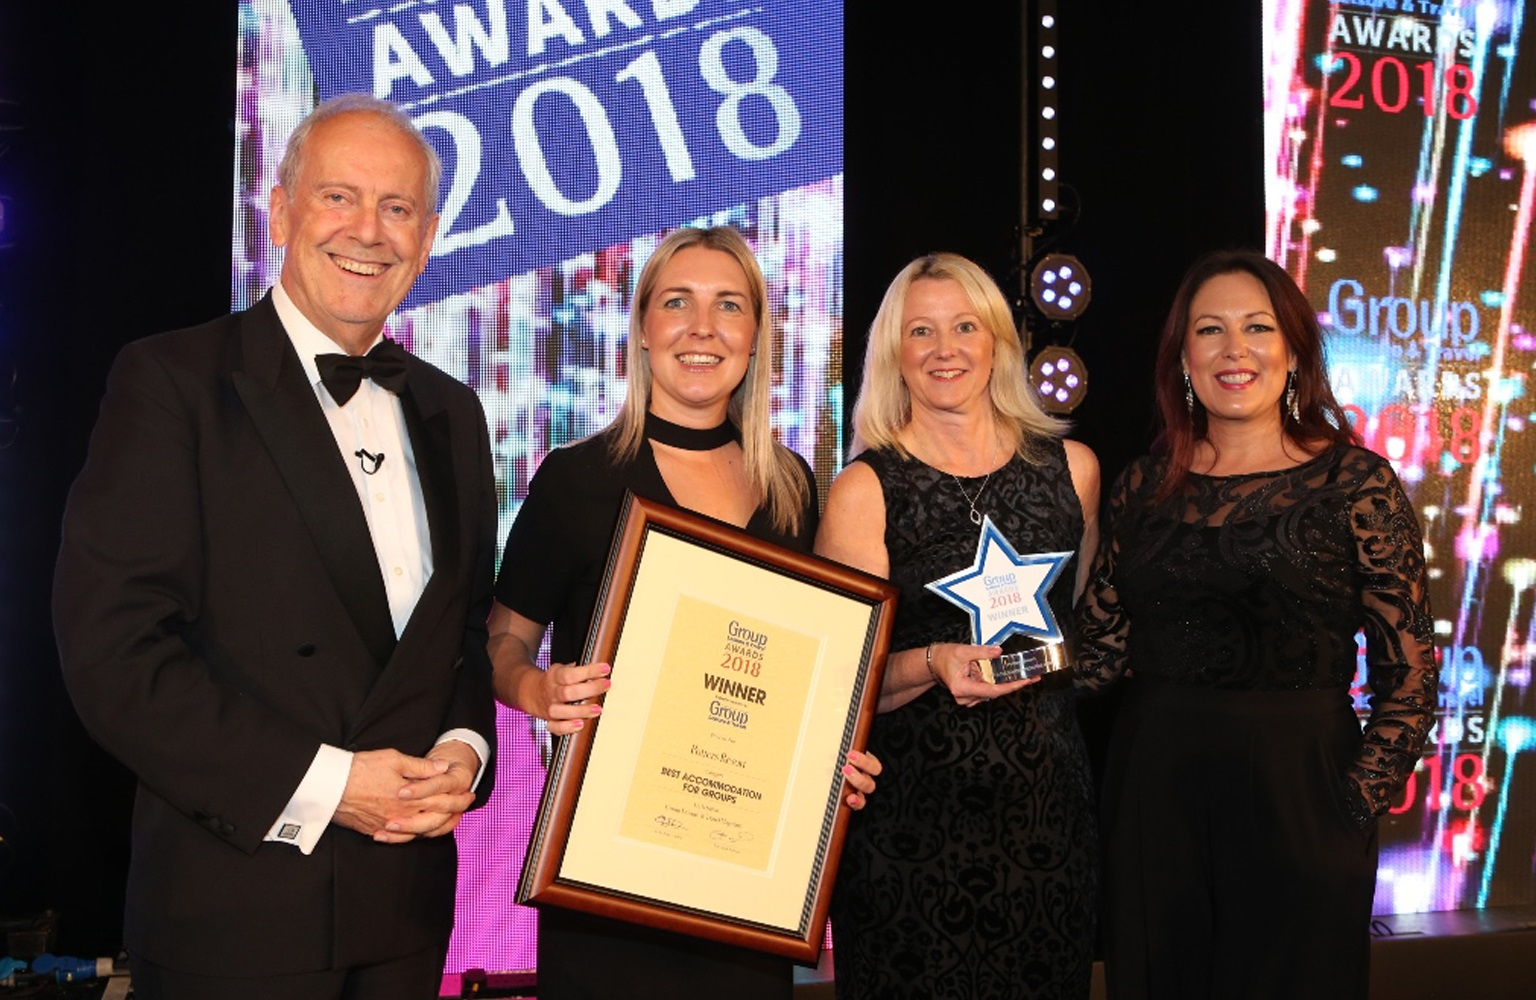 Potters Resort recognised as 'best accommodation for groups' at national awards